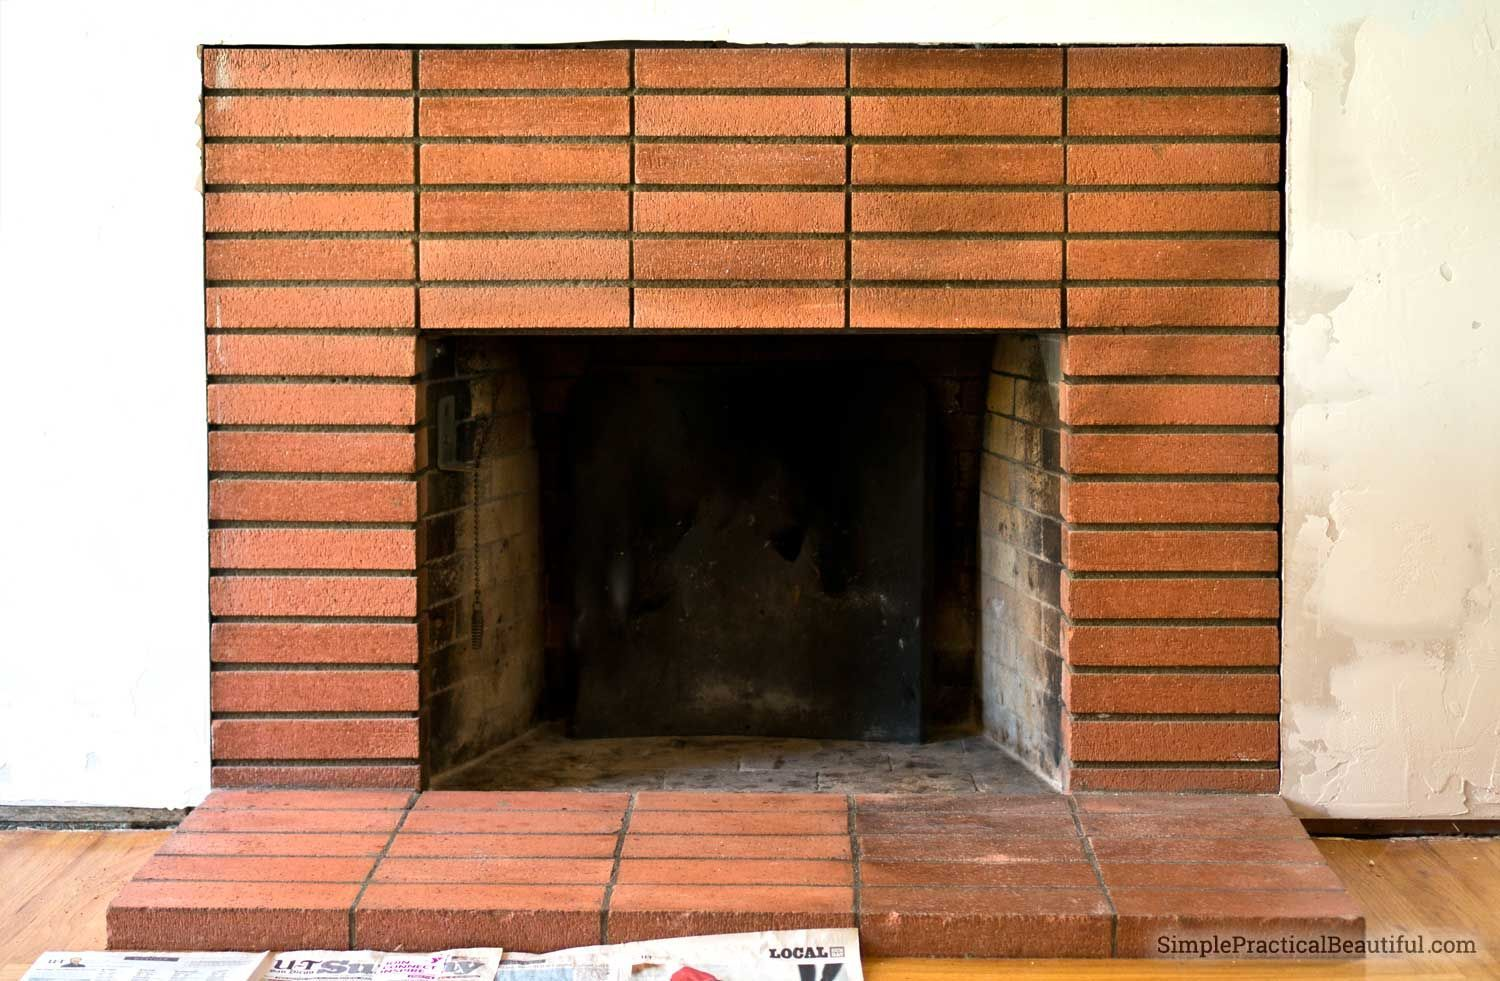 Cleaning Soot Ash And Smoke Off Fireplace Bricks Is Possible And Not Too Hard You Just Need The Right Cleaning Product